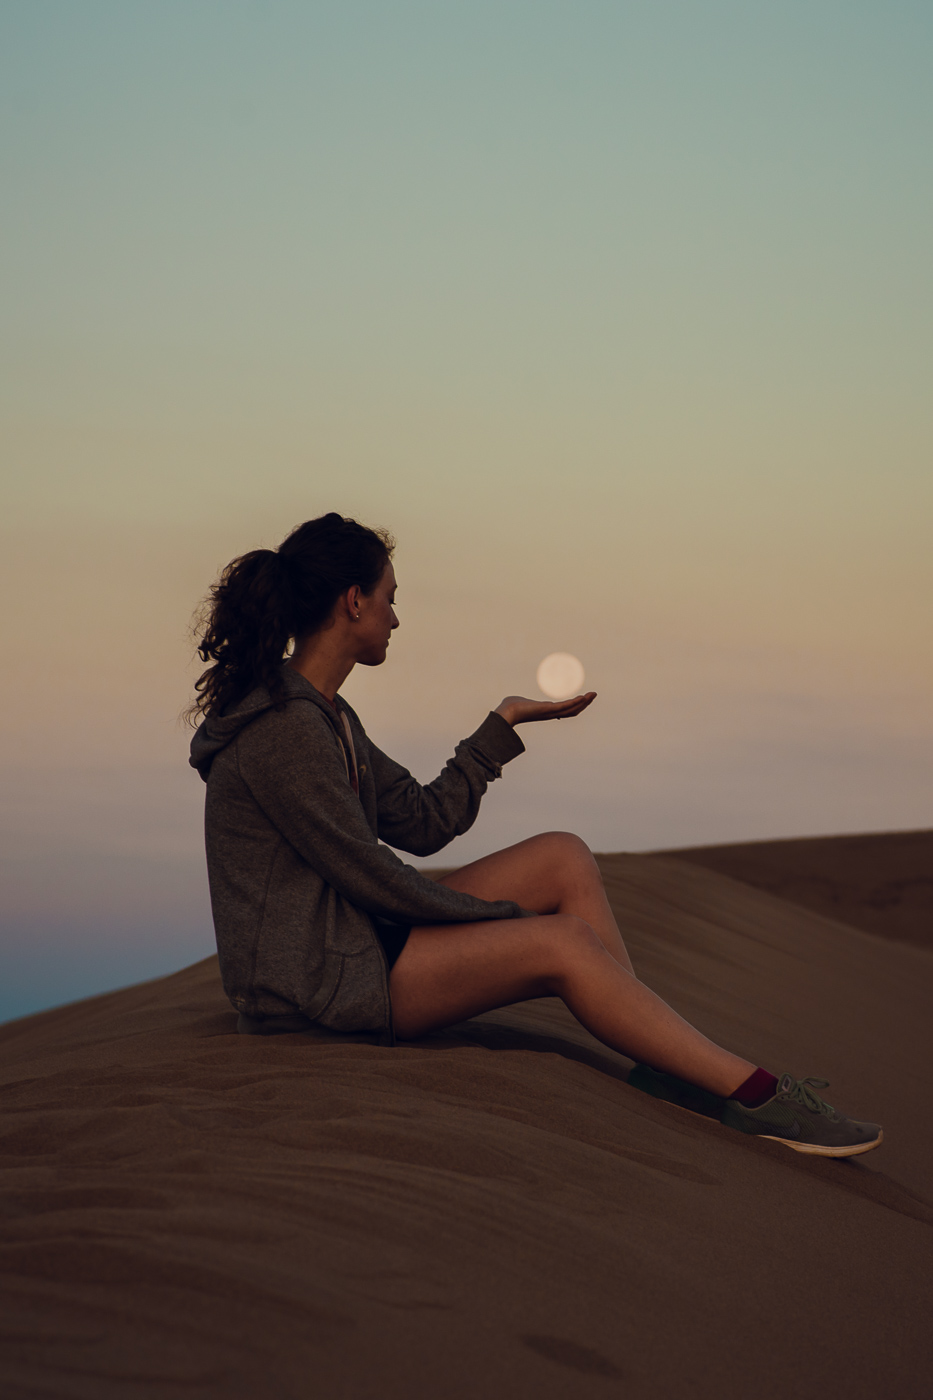 PHOCO Best of 2018 Photograph Fort Collins-30 Sand Dunes Sunrise Moon Hold Moriah Williams.jpg